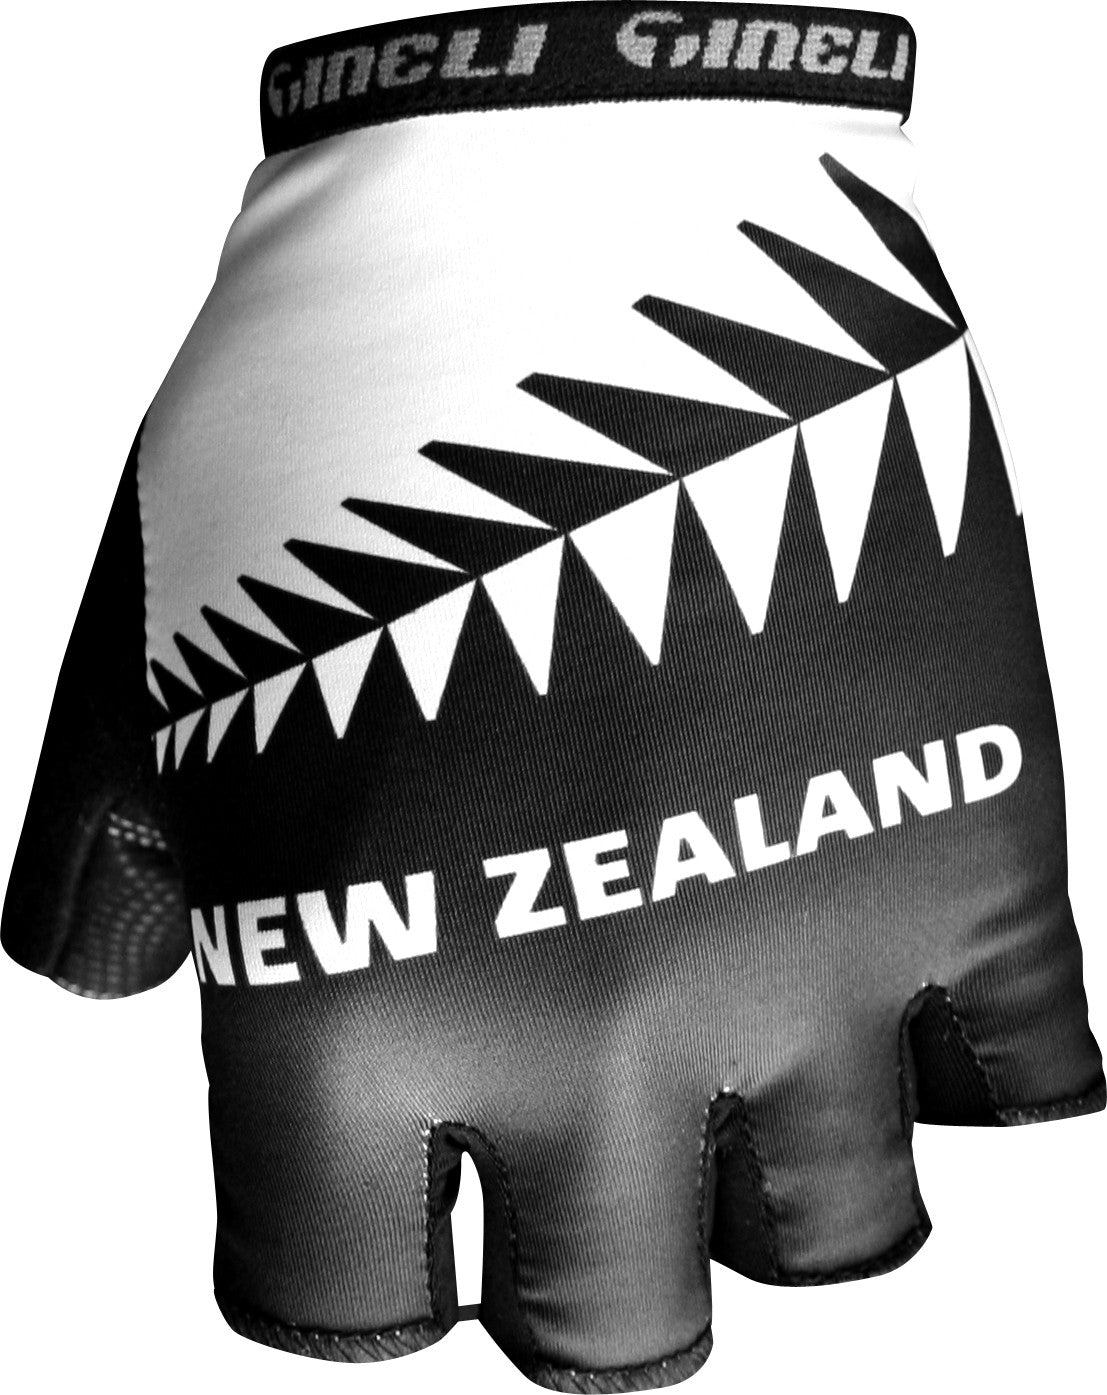 New Zealand Combo Set - get the full set and save